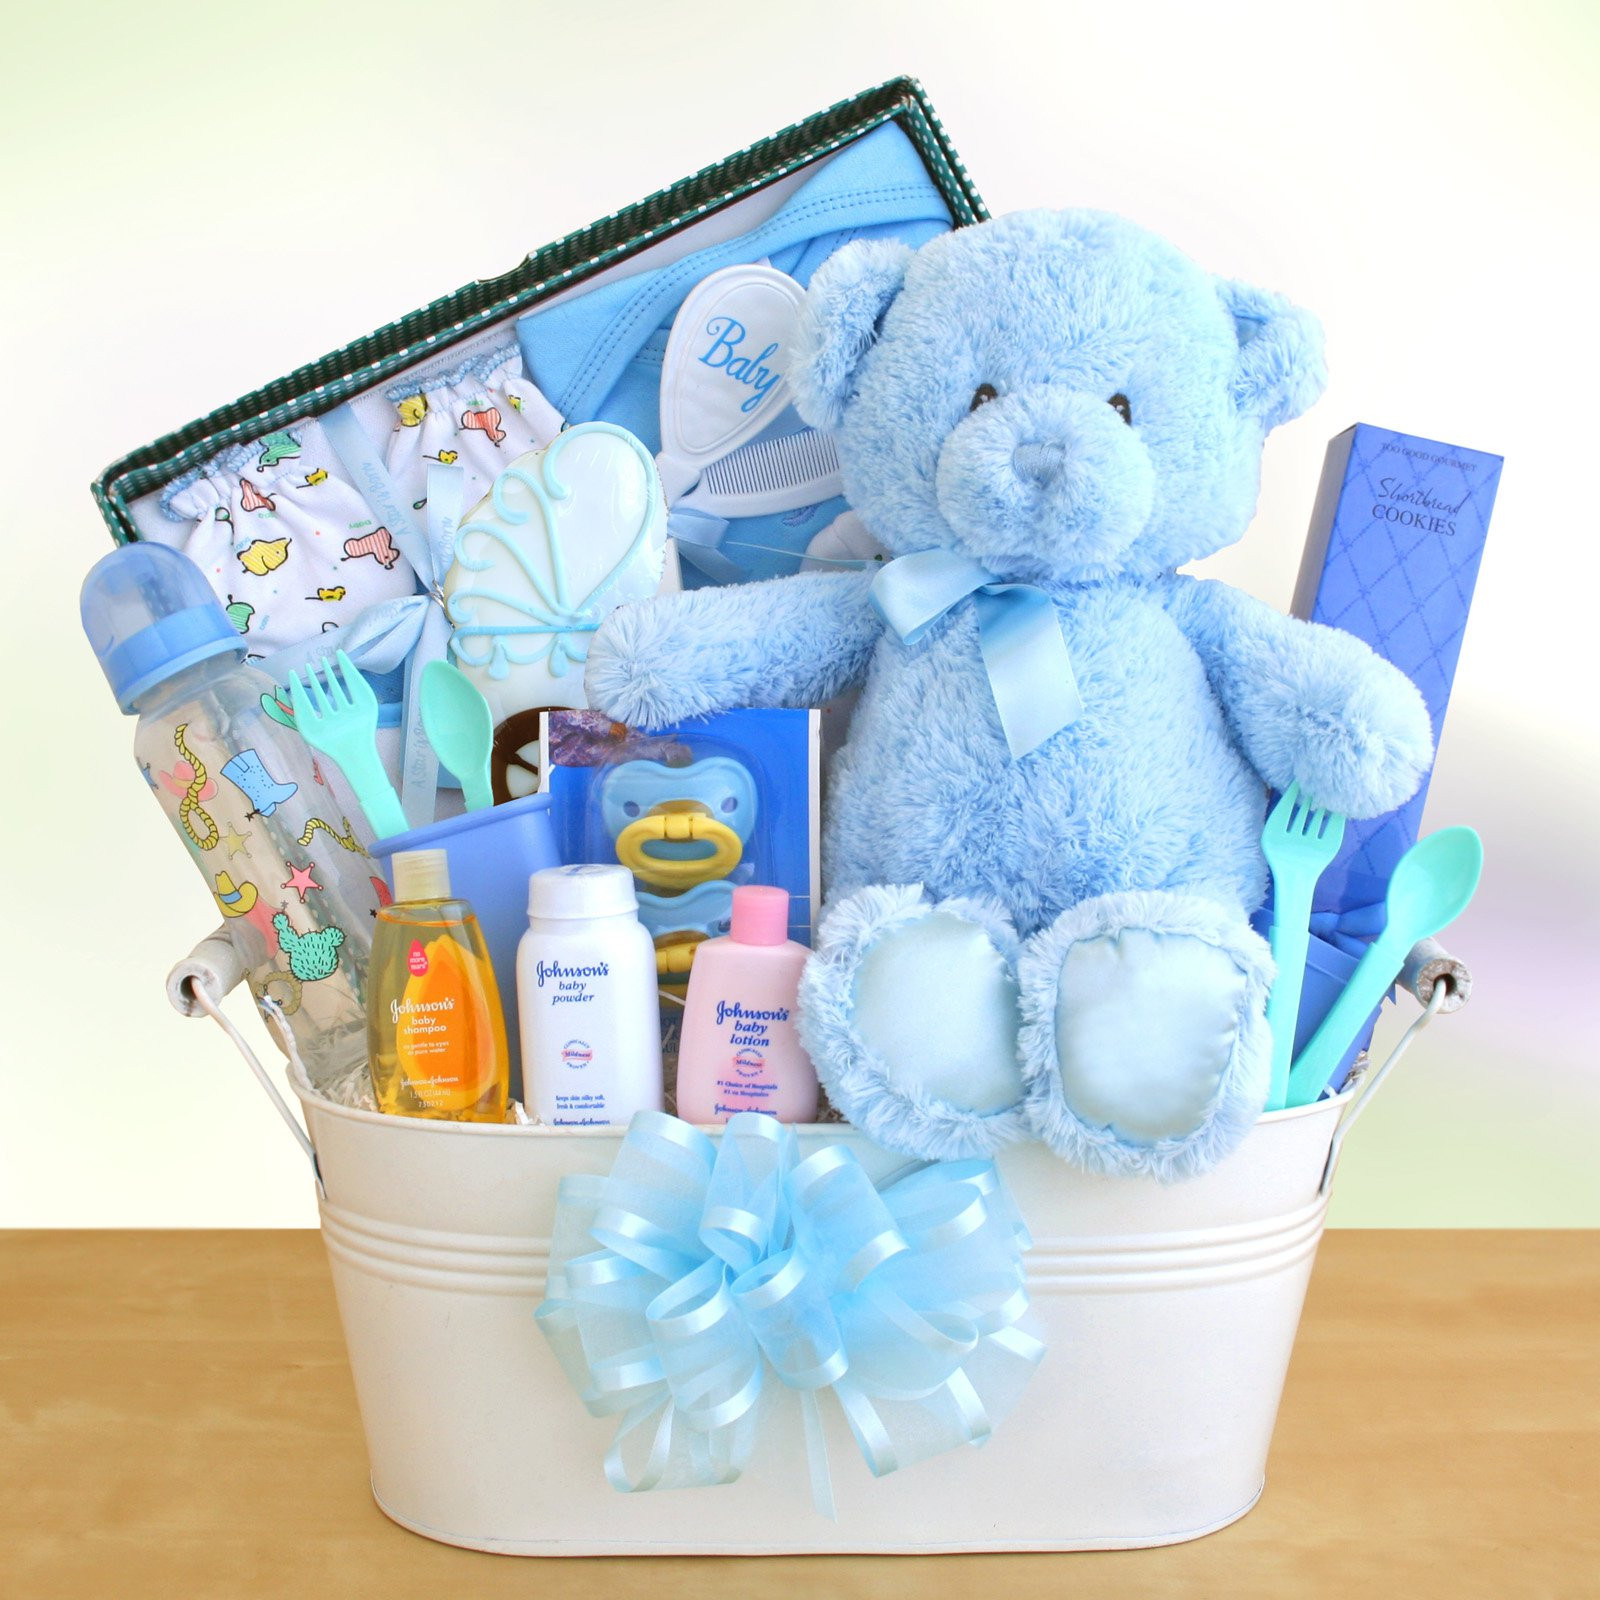 Best ideas about Cute Baby Boy Gift Ideas . Save or Pin New Arrival Baby Boy Gift Basket Gift Baskets by Now.